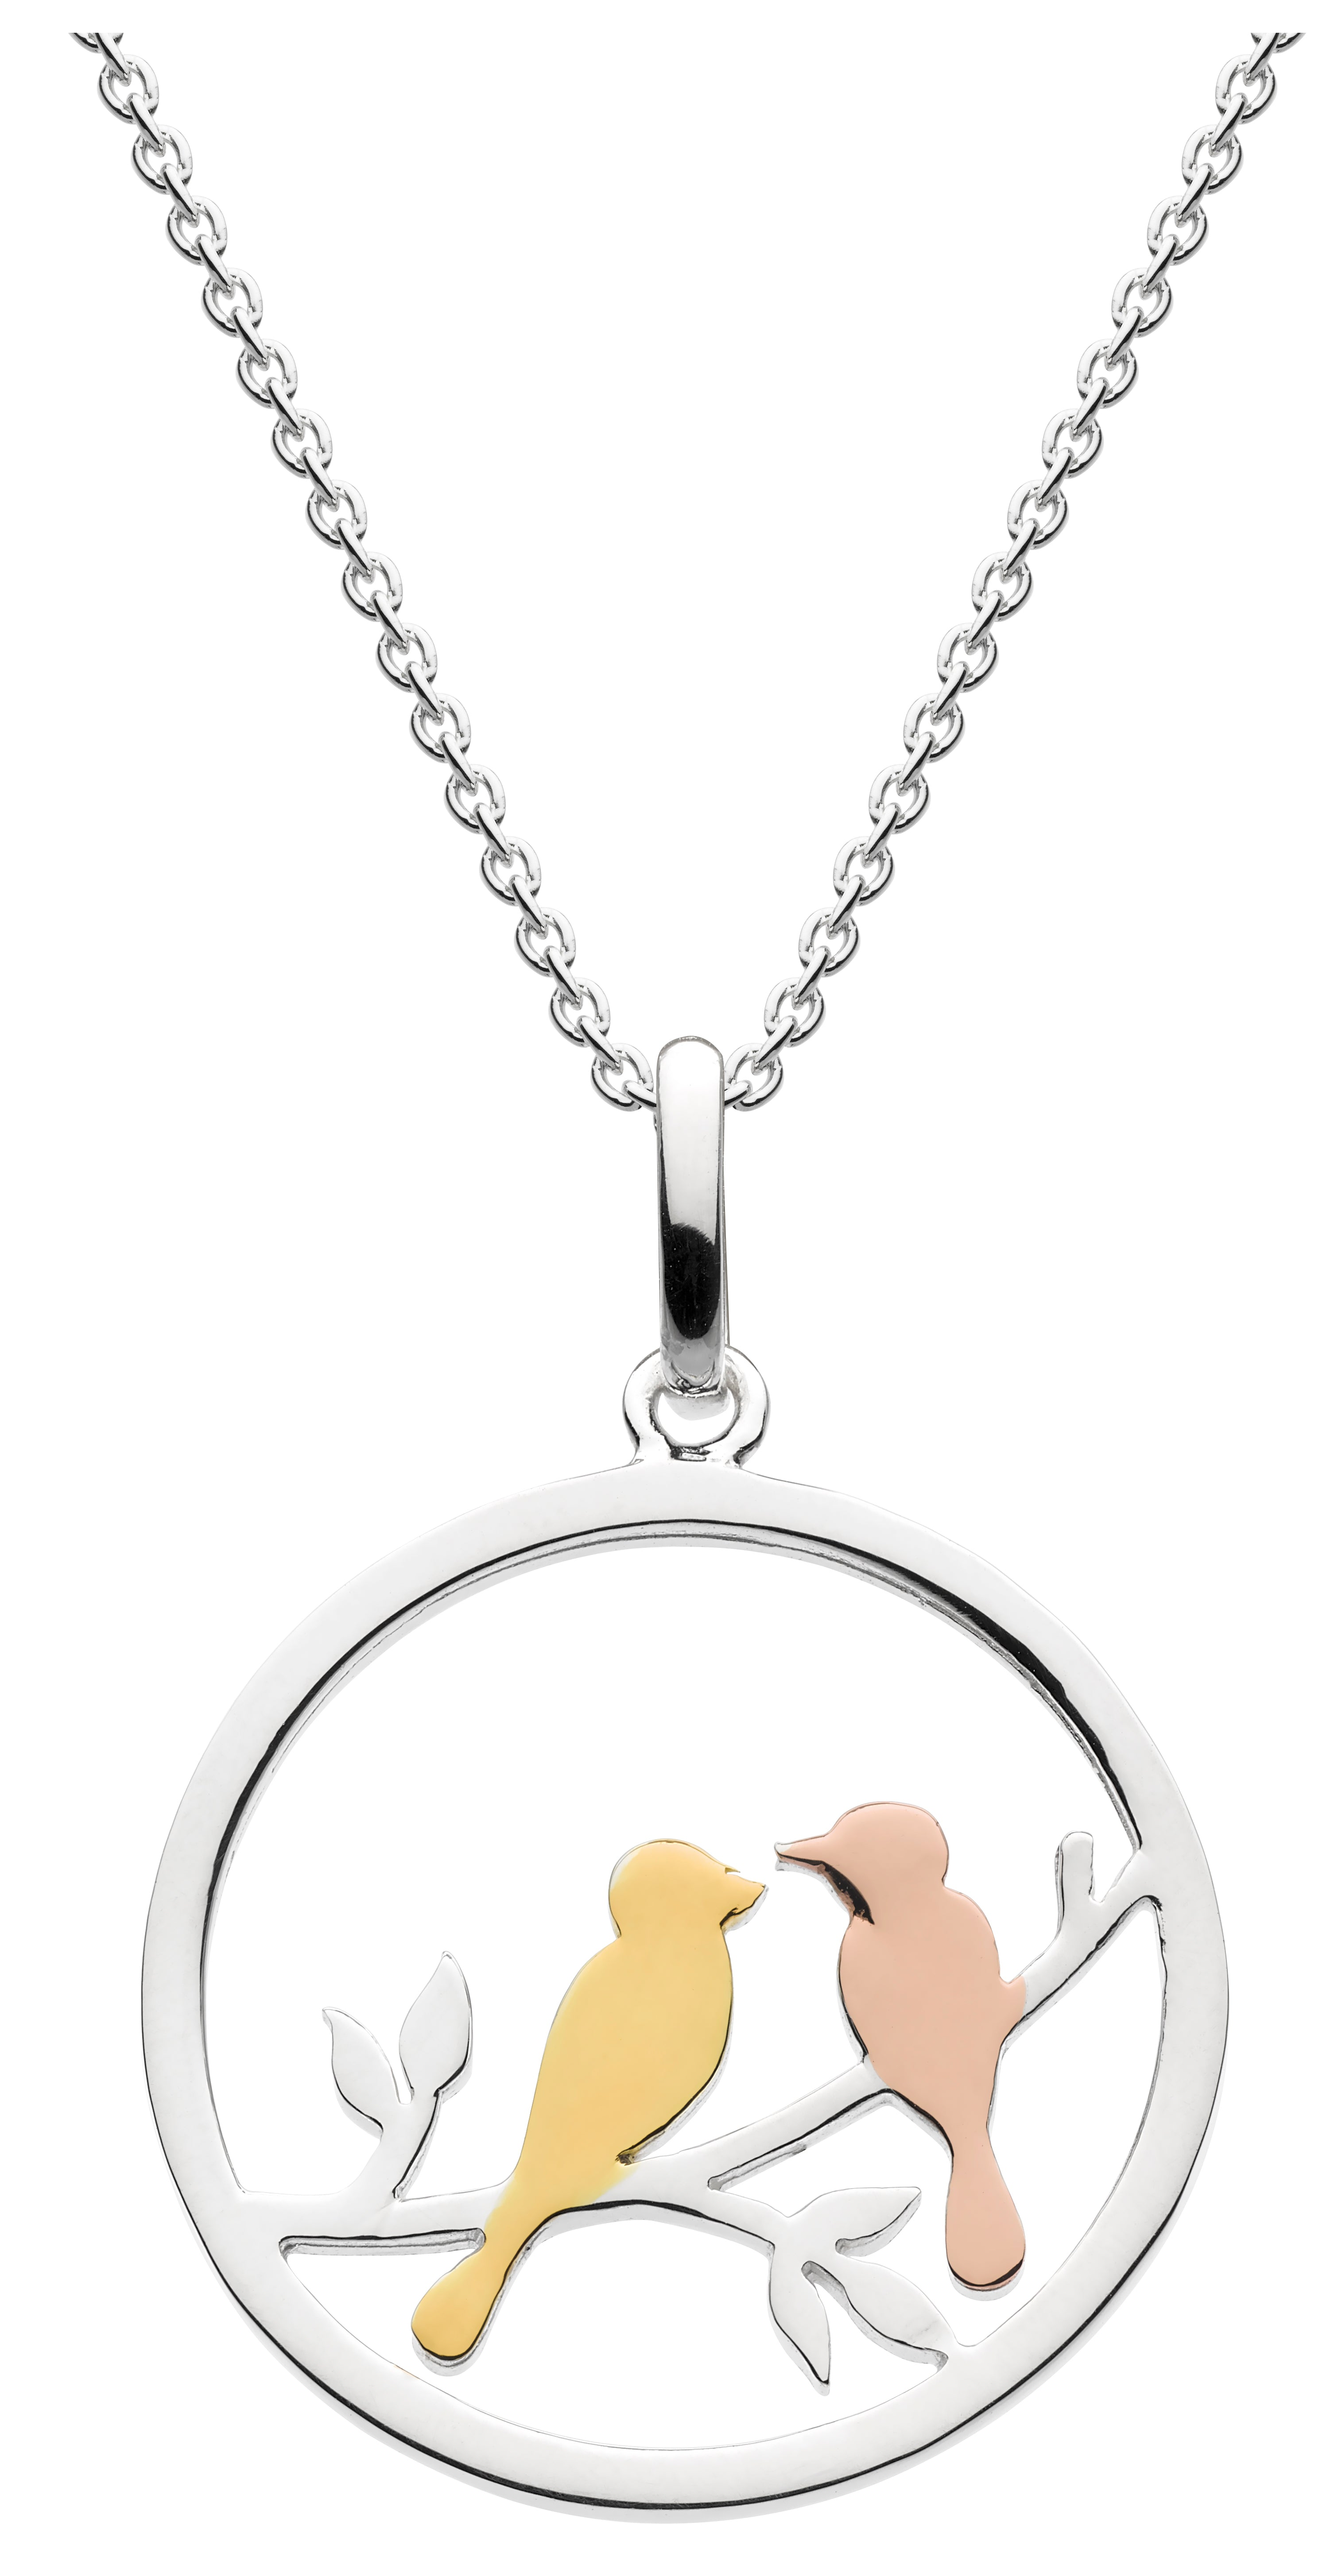 pendant with two birds in gold and rose gold plated detail sat on a branch within a simple circle of sterling silver.